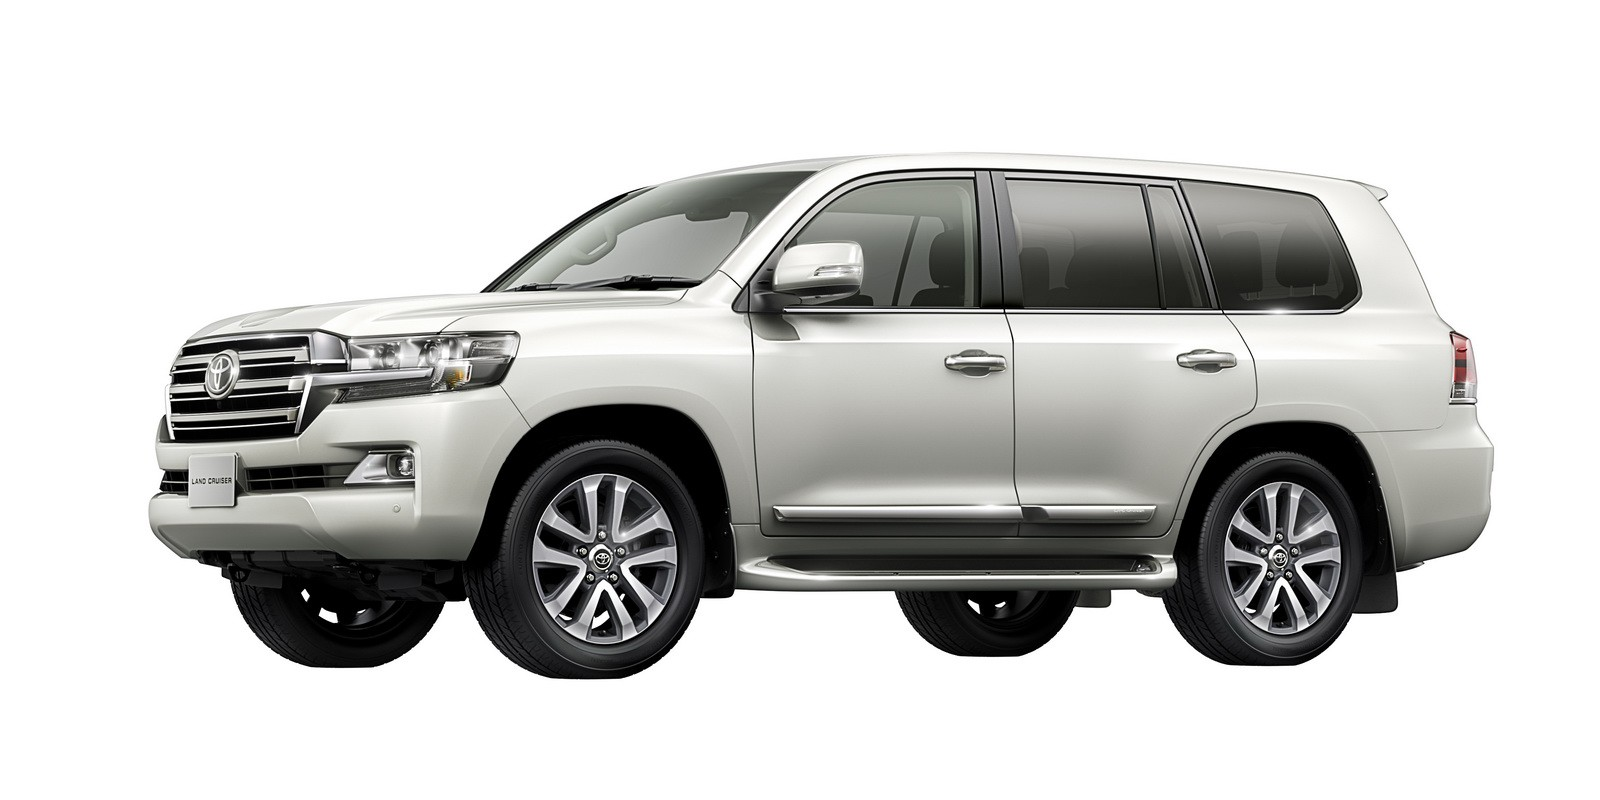 Toyota Land Cruiser 2020 Exterior Side View